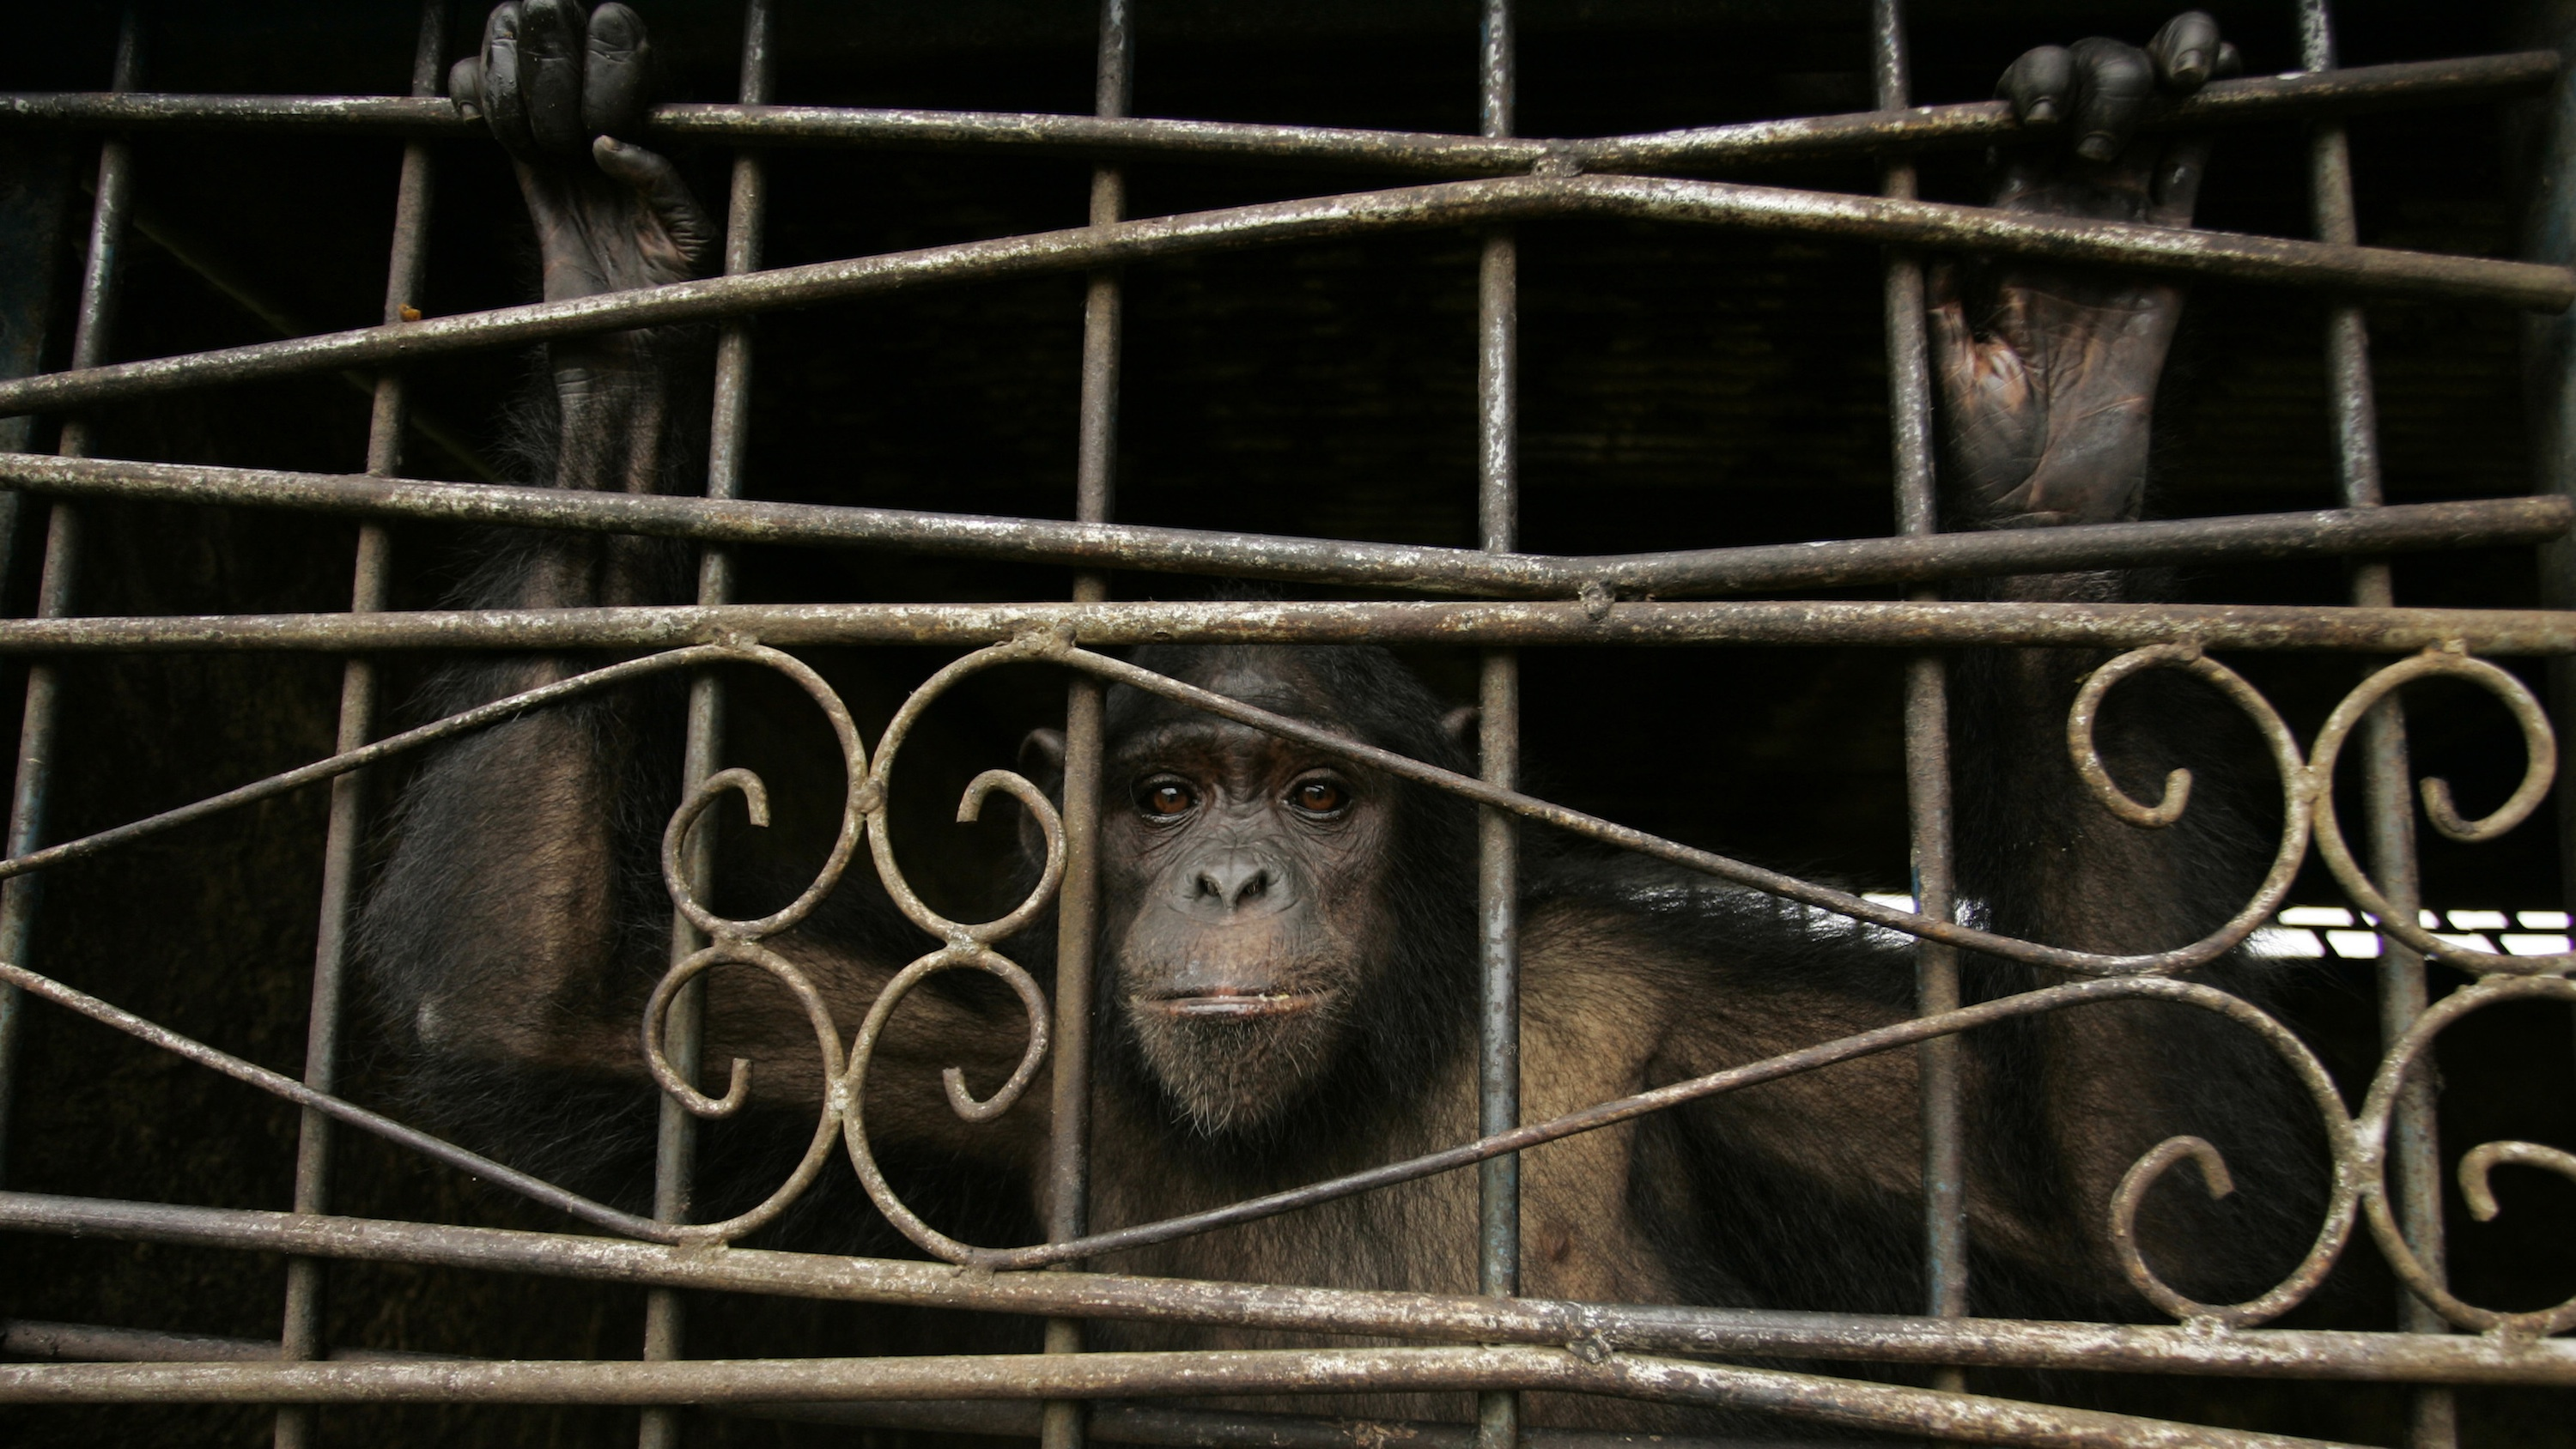 The great-ape personhood movement says apes have the right to liberty.